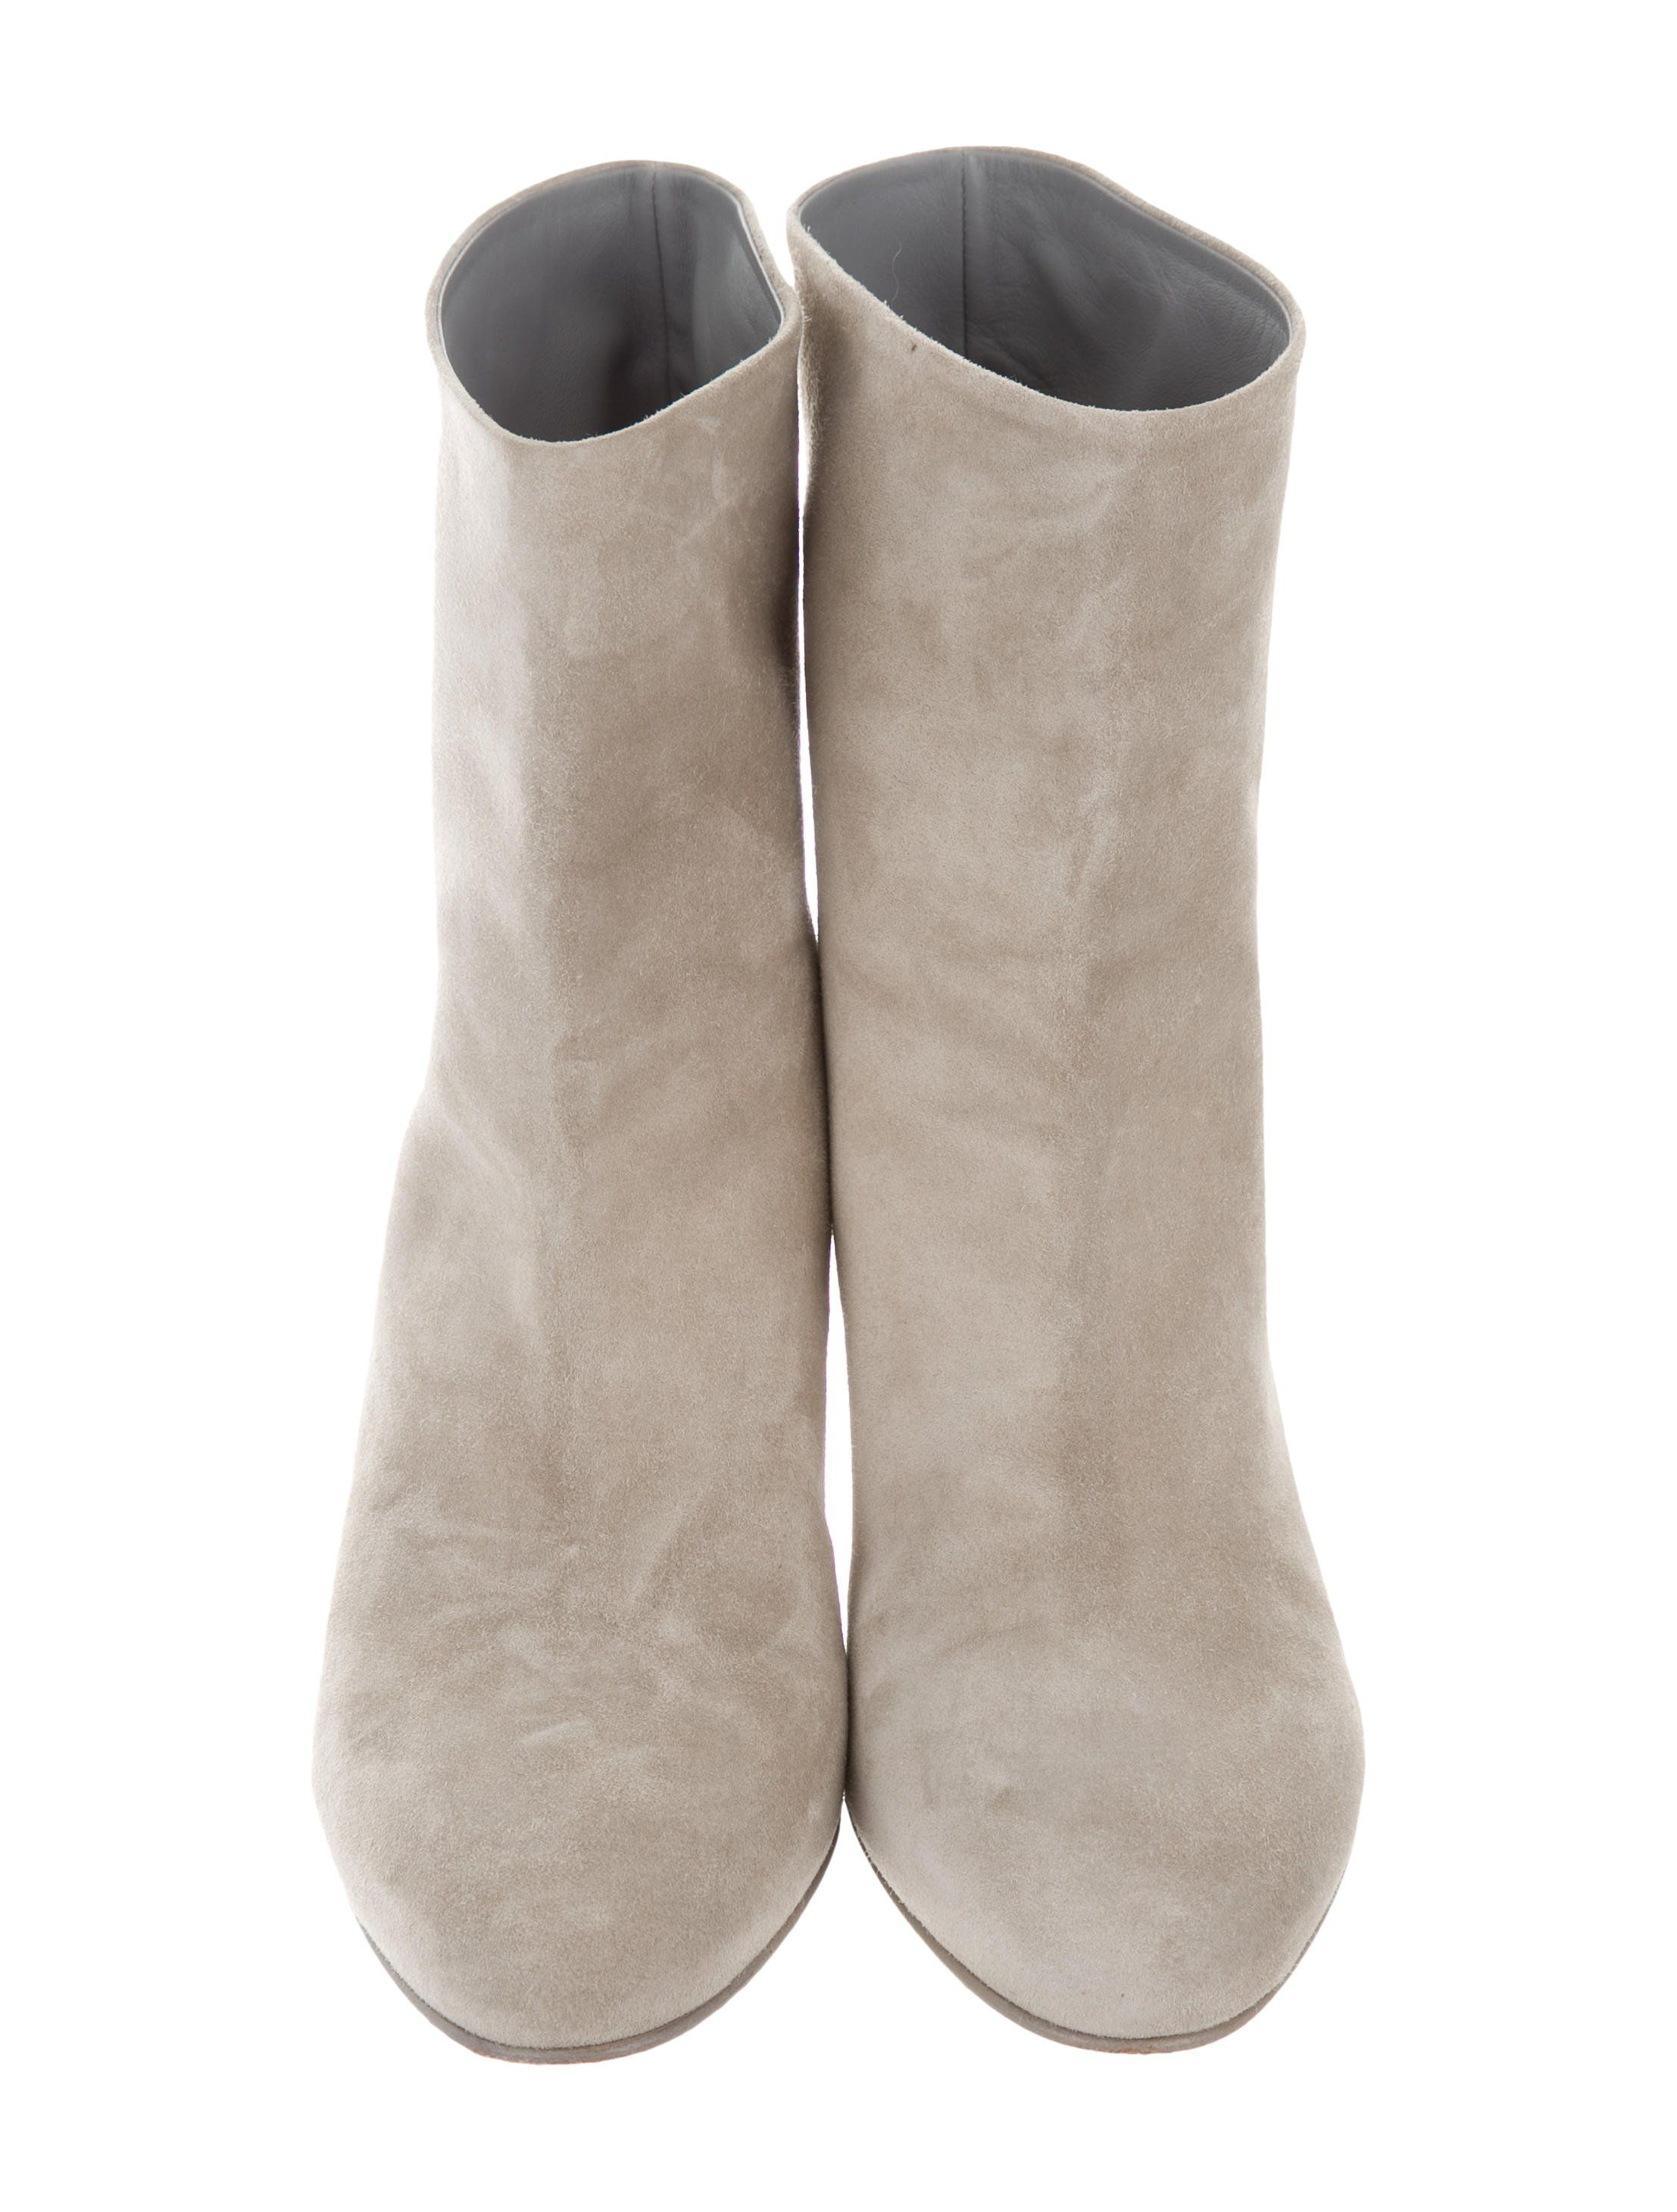 6c303298f0 Creme suede Chanel ankle boots with round toes, gold-tone interlocking CC  accents at uppers and stacked block heels.